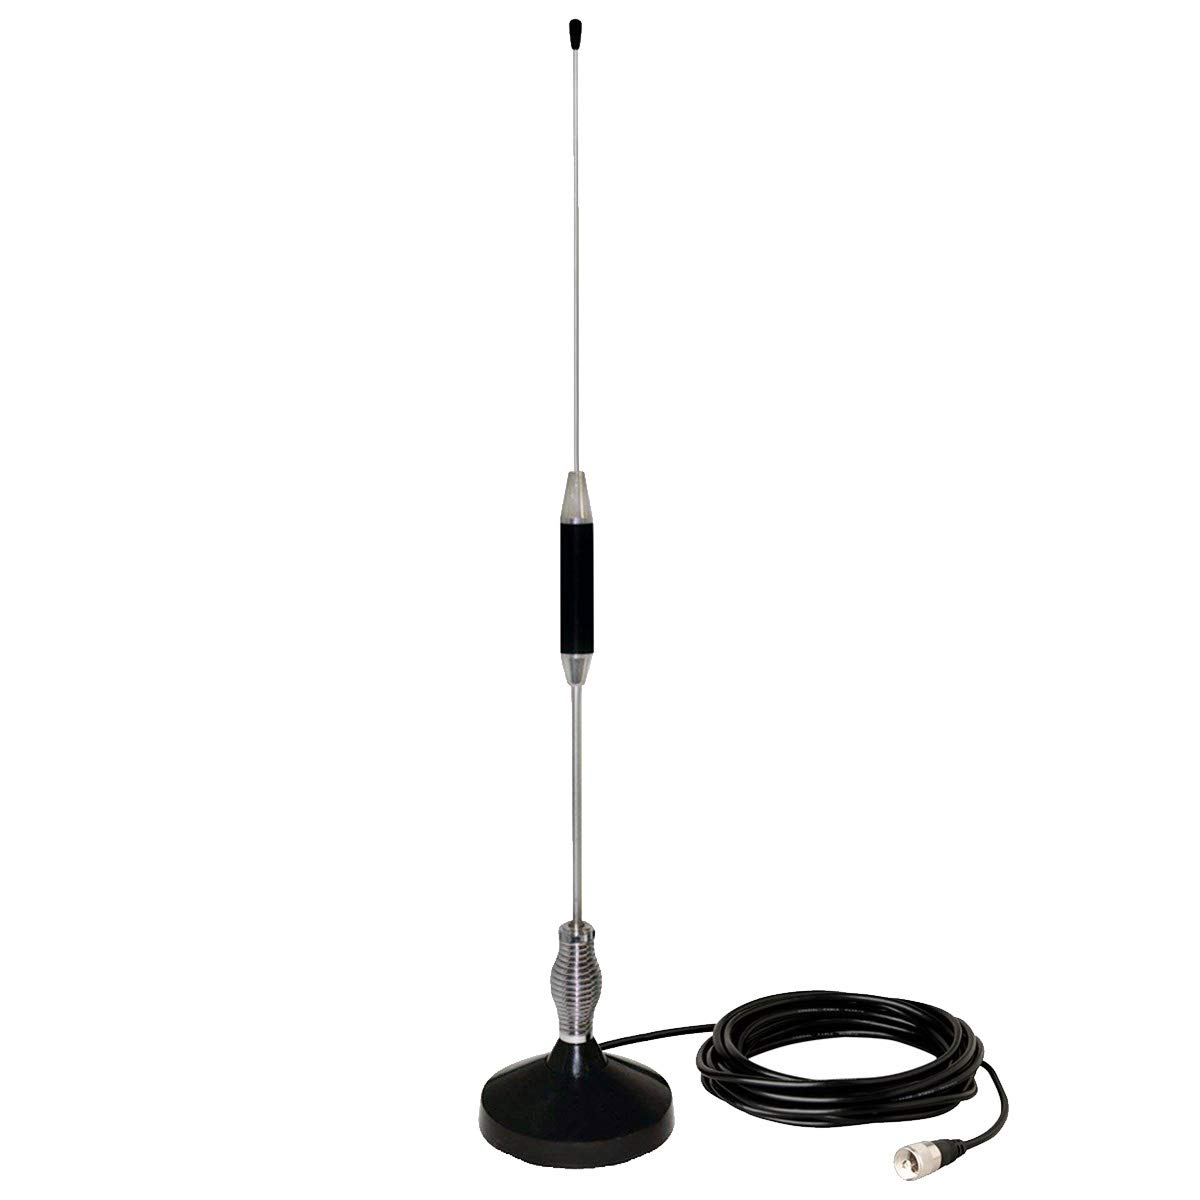 CB Antenna 28 inch for CB Radio 27 Mhz,Portable Indoor/Outdoor Antenna Full Kit with Heavy Duty Magnet Mount Mobile/Car Radio Antenna Compatible with President Midland Cobra Uniden Anytone by LUITON